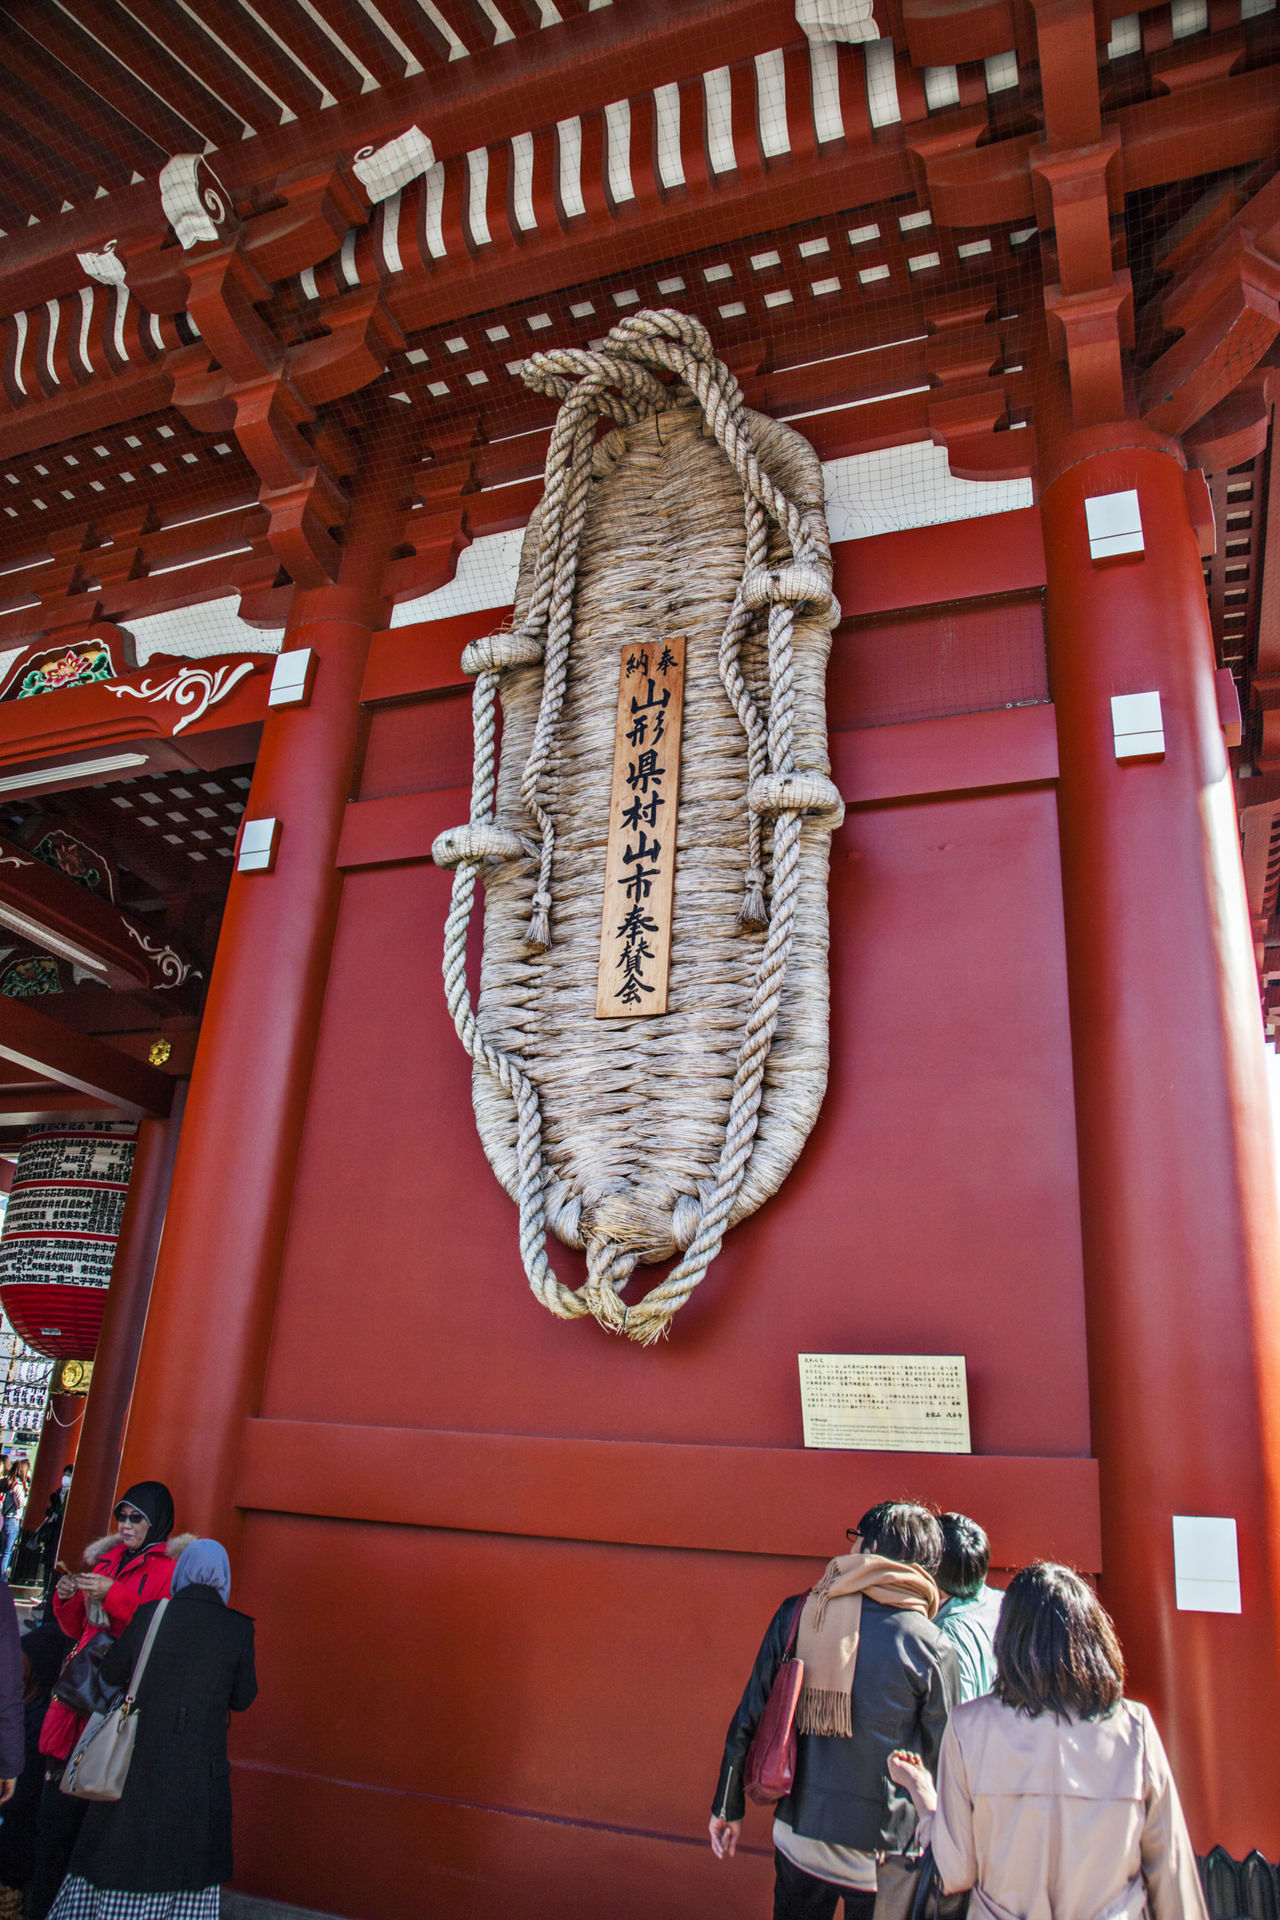 Senso-Ji Temple Tokyo Japan Culture Cultures Famous Place History Japan Lifestyles Place Of Worship Religion Sandal Senso-Ji Temple. Spirituality Temple Tokyo Tourism Tourist Tourist Destination Tradition Large Straw Sandal Travel Destinations